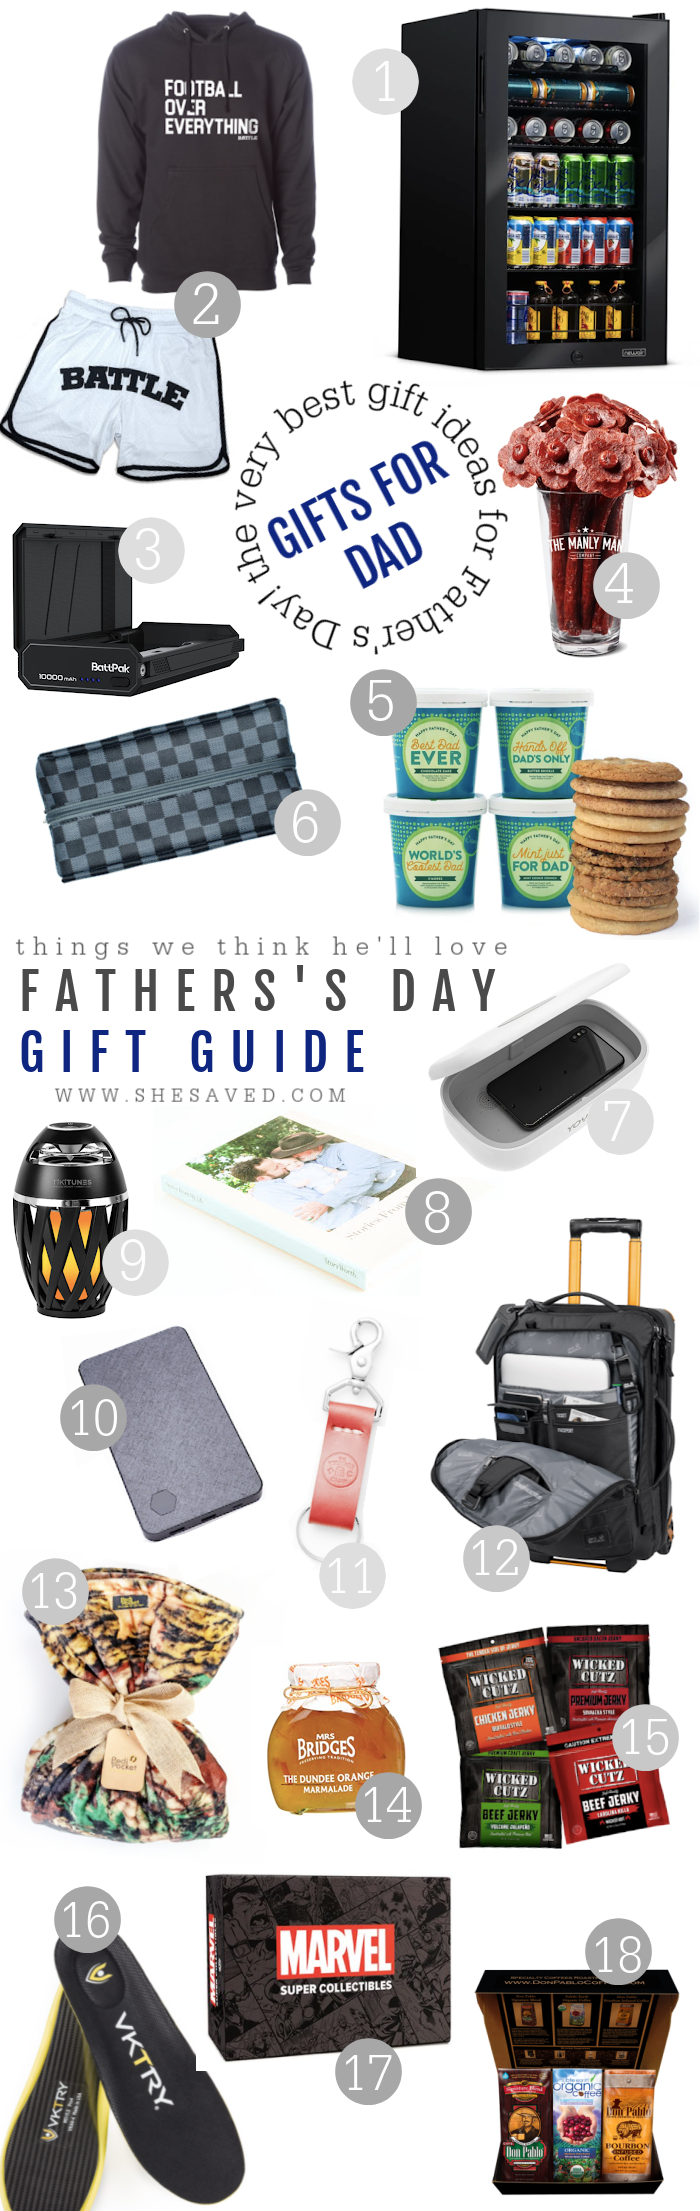 Different gift ideas for dad for Father's Day like a beer fridge, life story book, luggage, ice cream and cookies, cell phone charger and more!